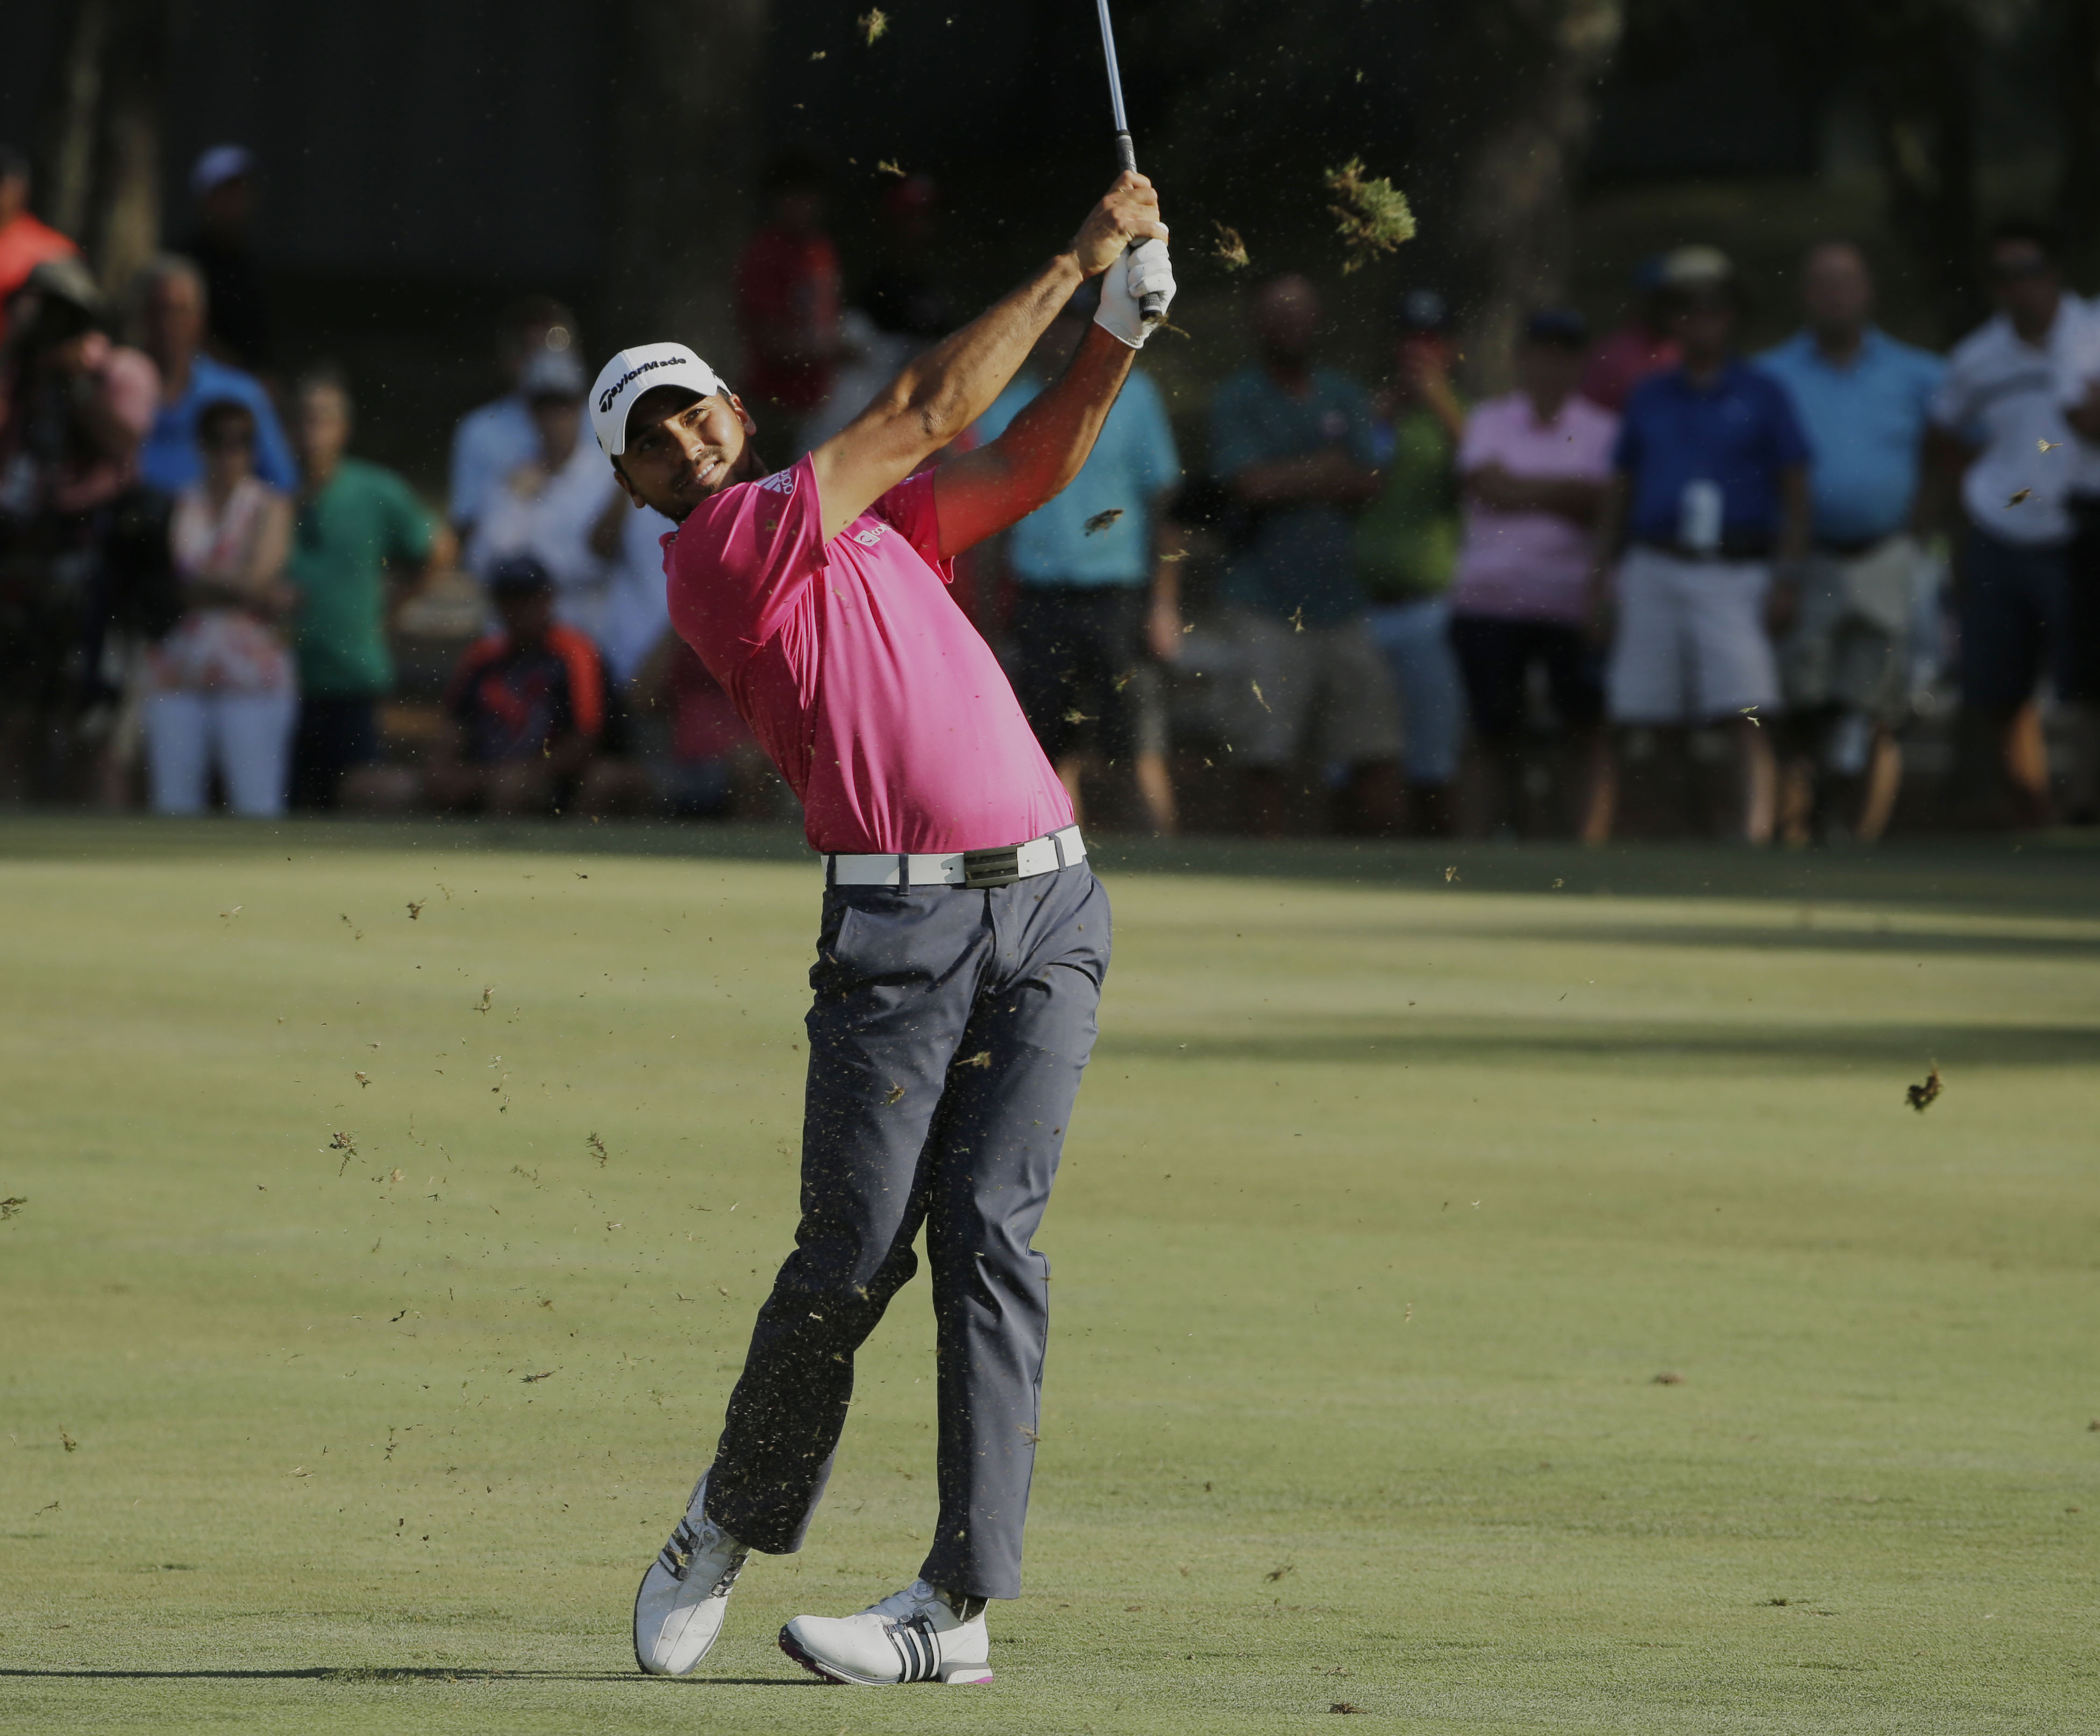 Jason Day of Australia, hits from the 15th hole fairway during the final round of The Players Championship golf tournament Sunday, May 15, 2016, in Ponte Vedra Beach, Fla. (AP Photo/Chris